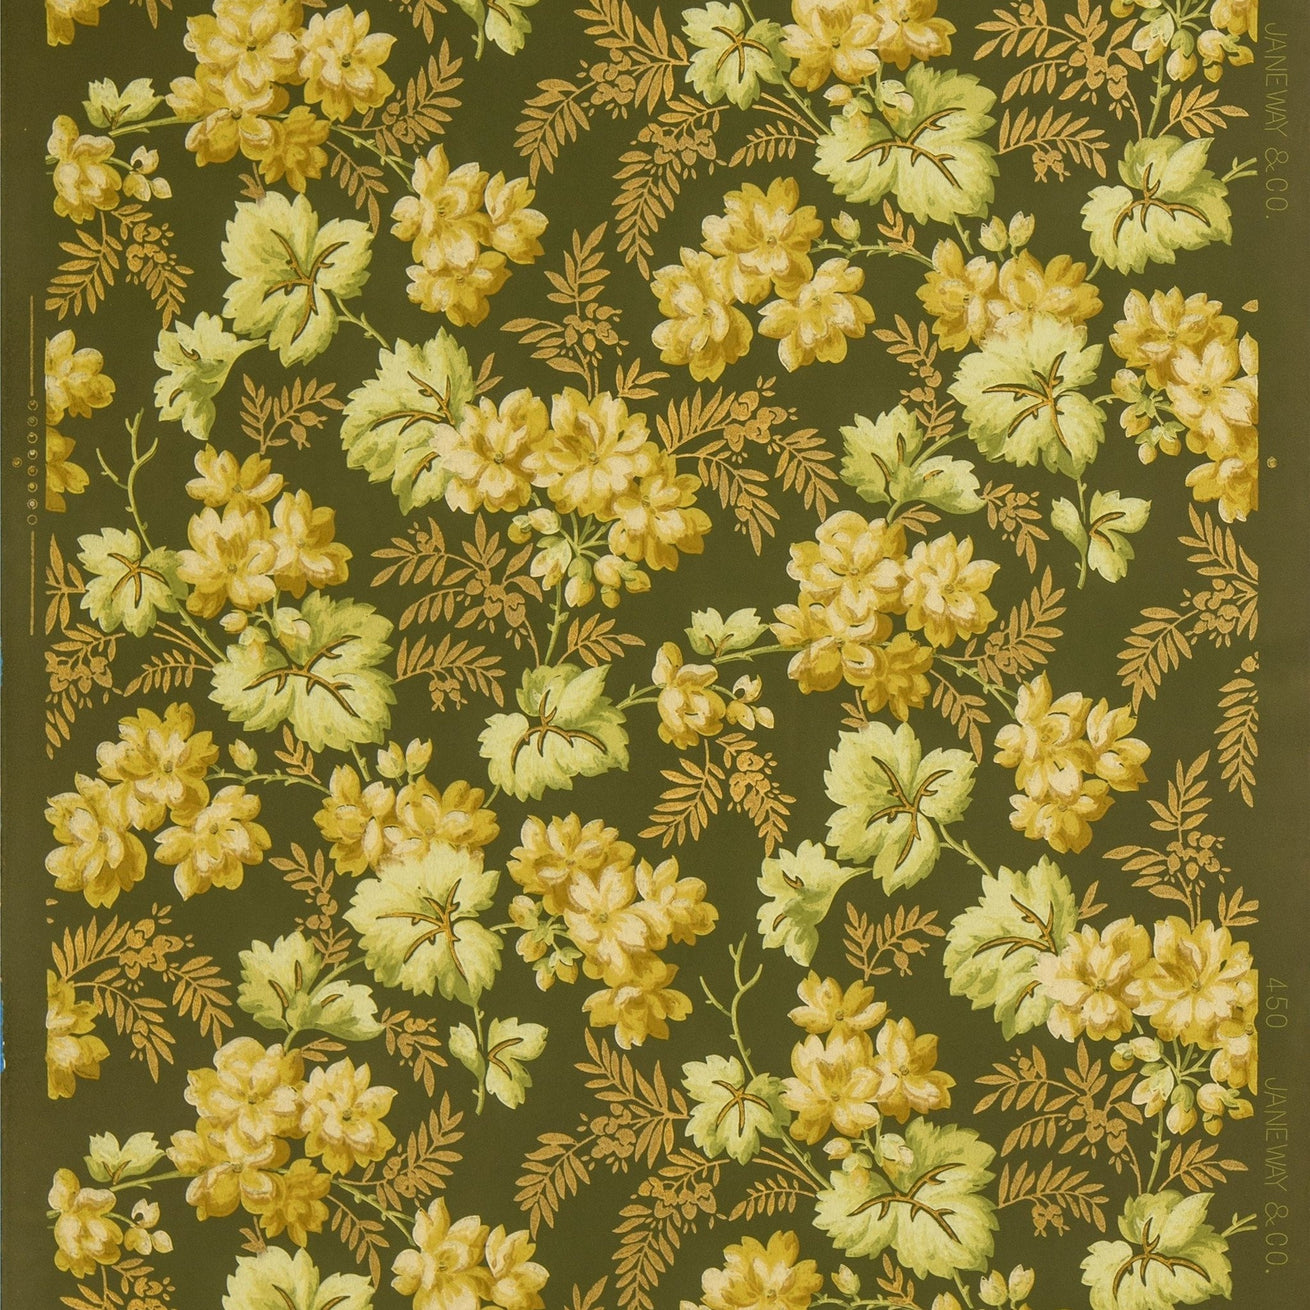 Flower Clusters Amid Gilt Foliate Sprigs - Antique Wallpaper Remnant